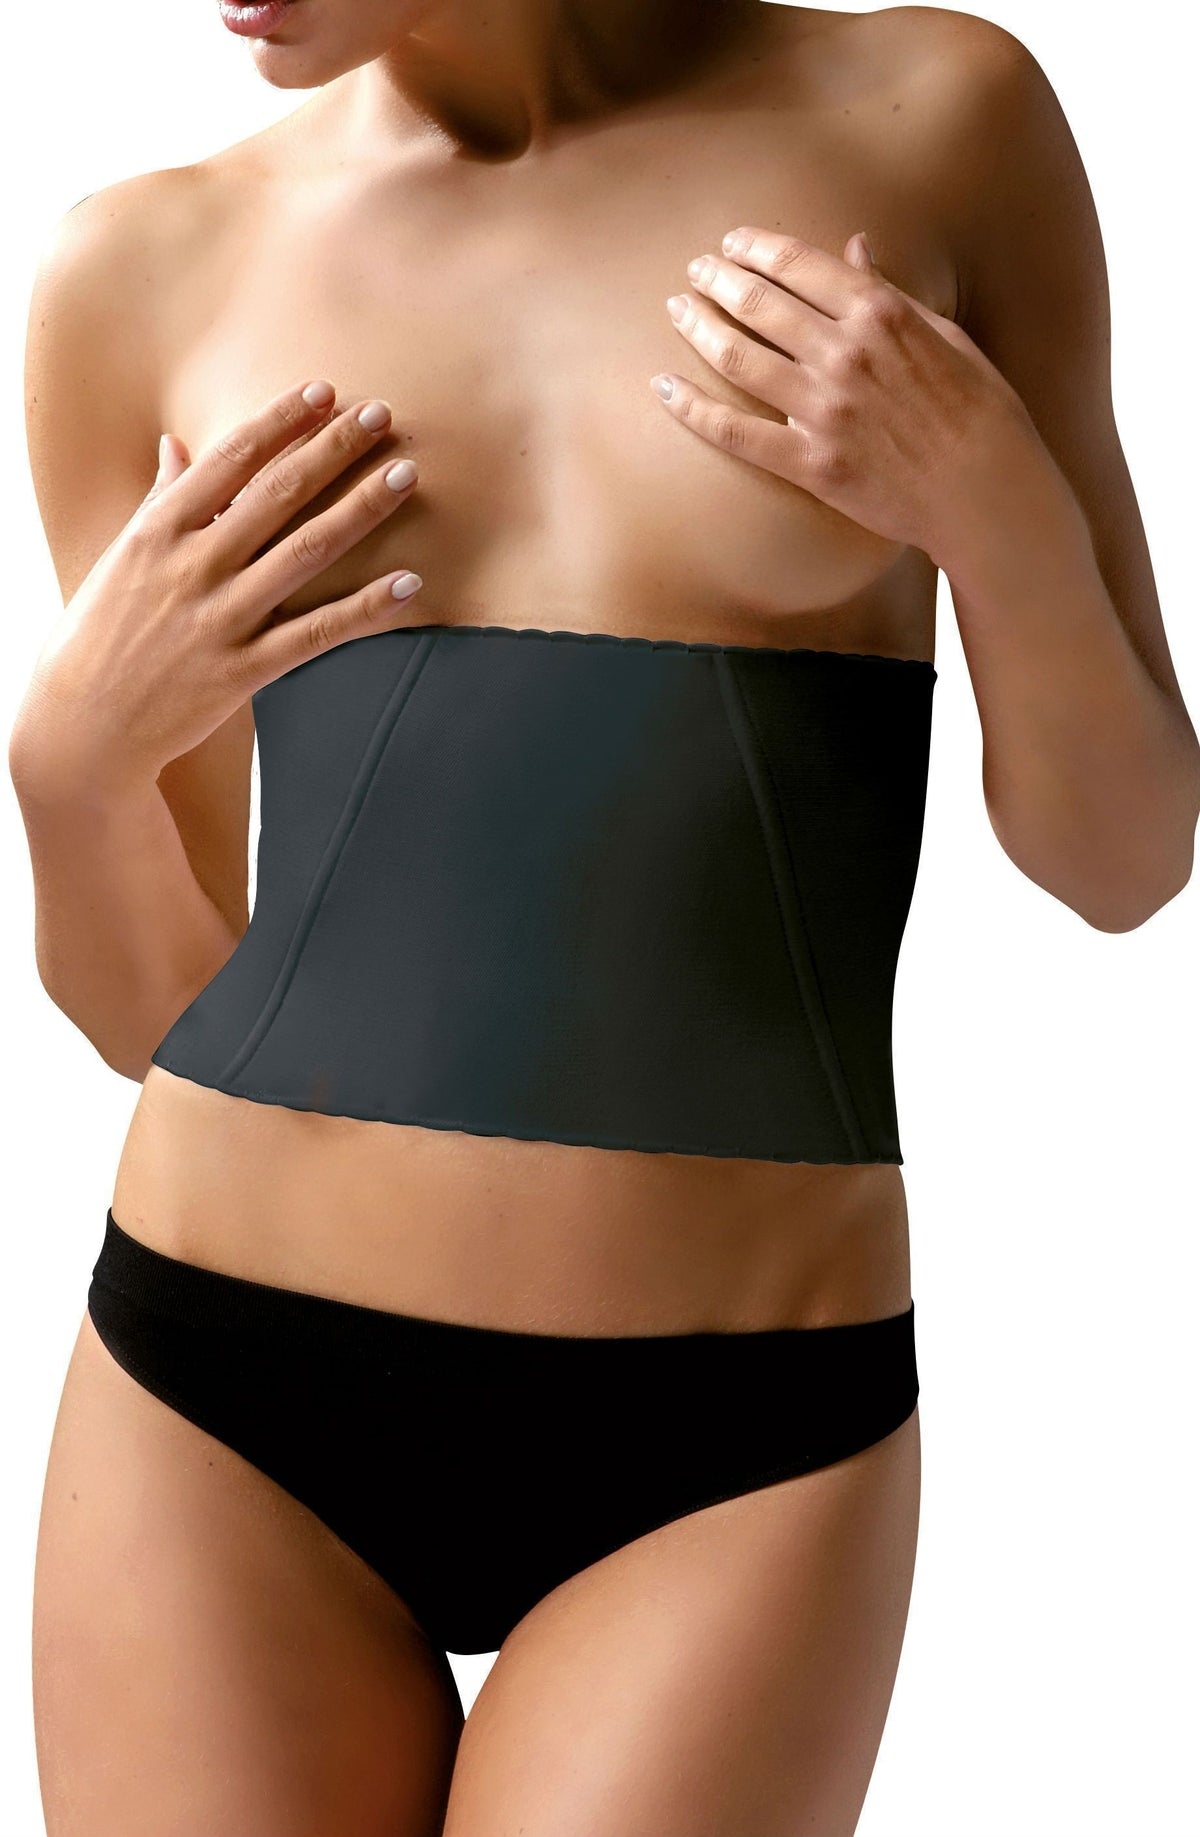 control body Control Body Corset UK 10-12 / Black Control Body Black Boned Corset - Firm Support